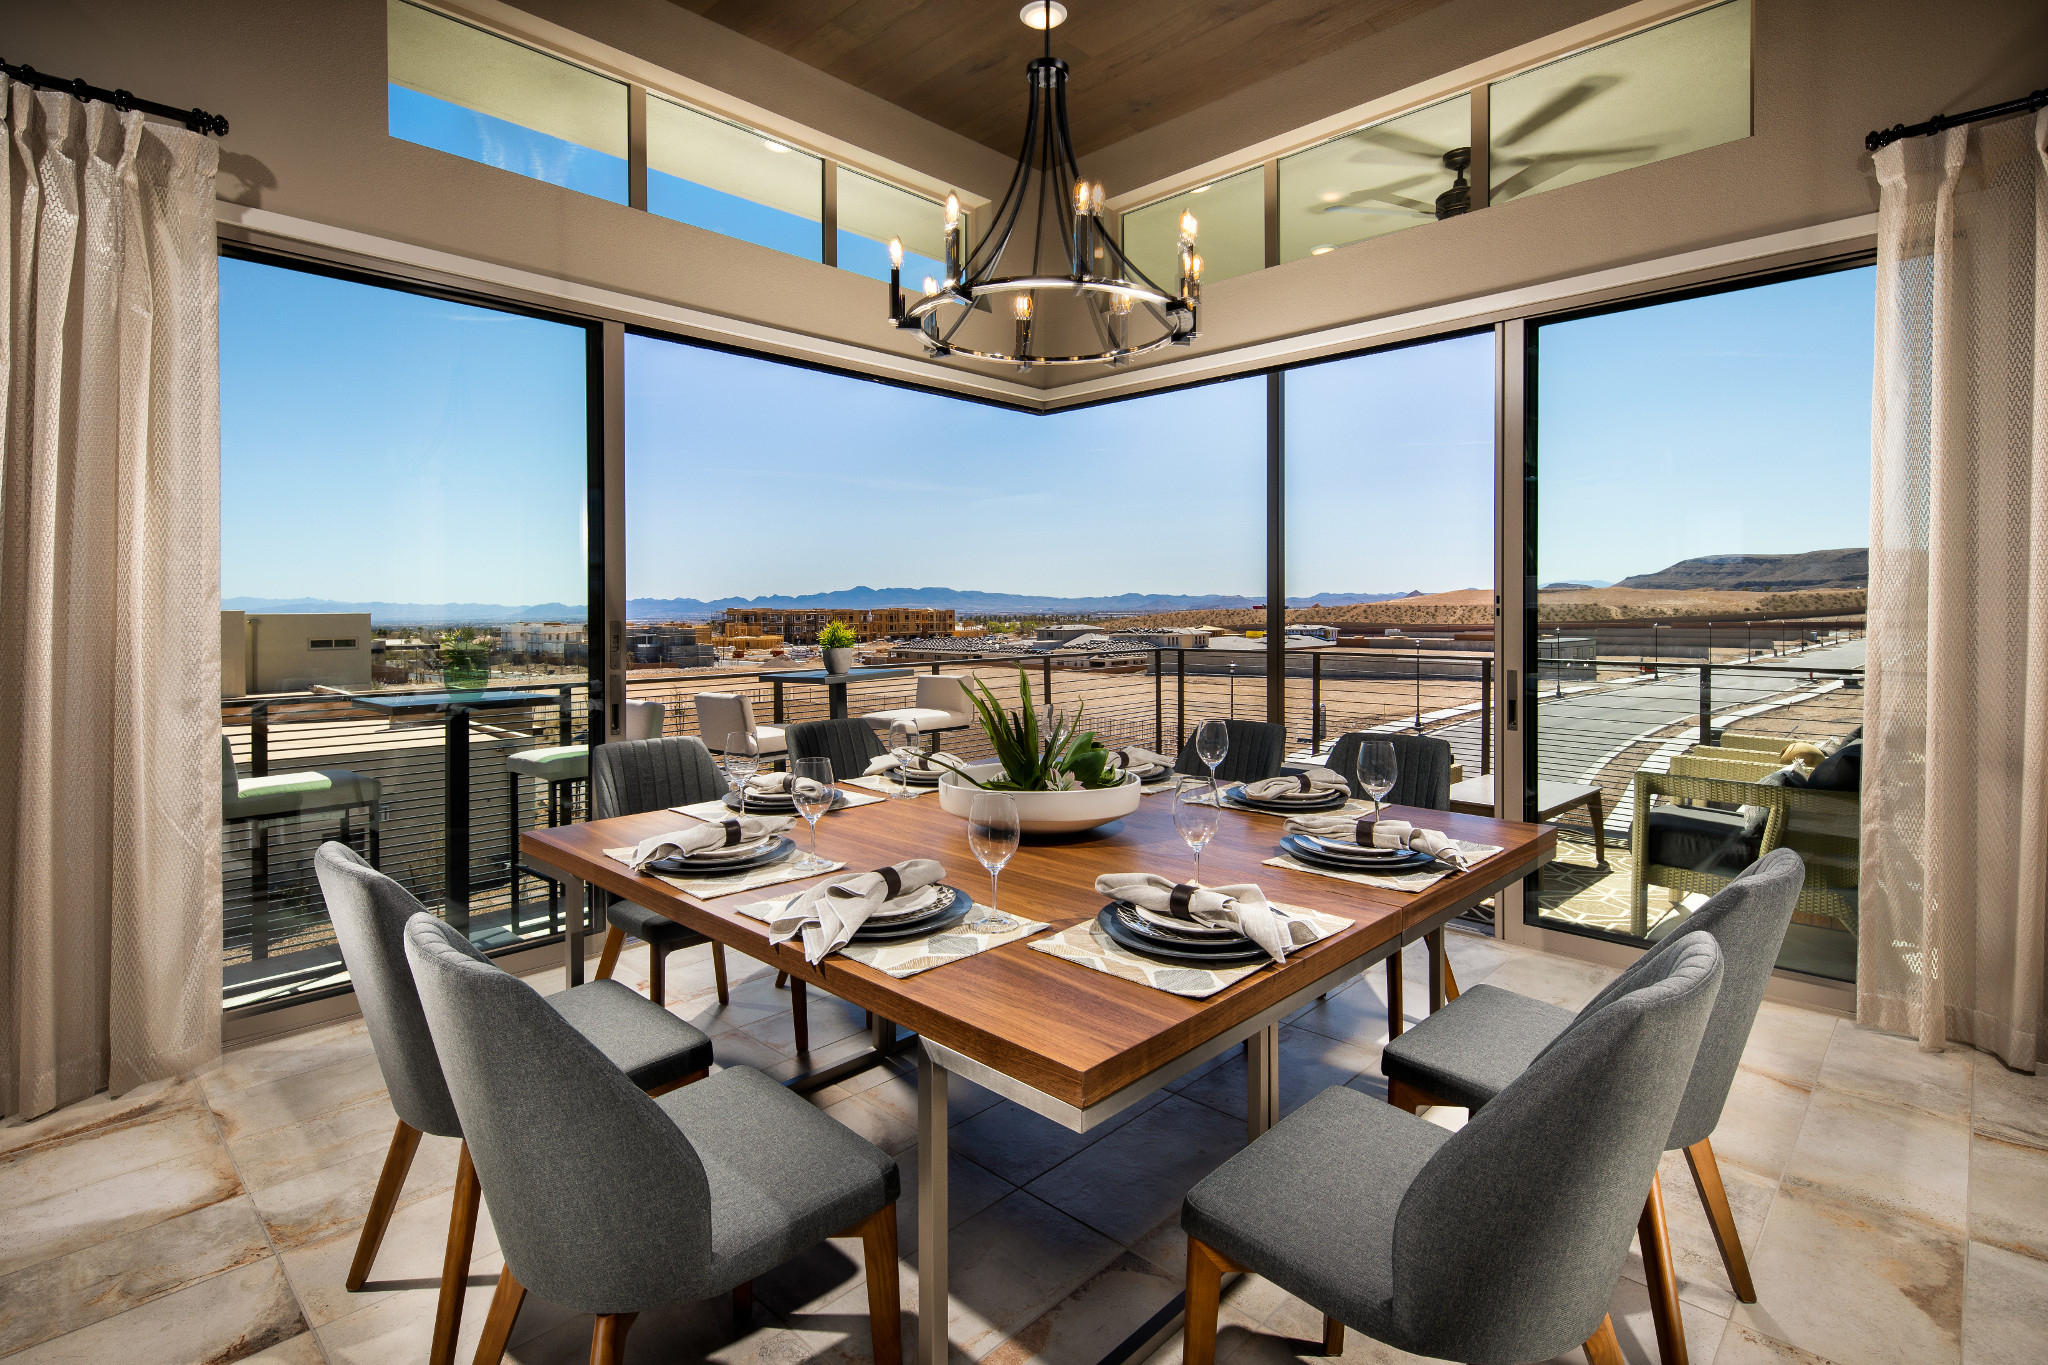 Trilogy in Summerlin Apex Dining